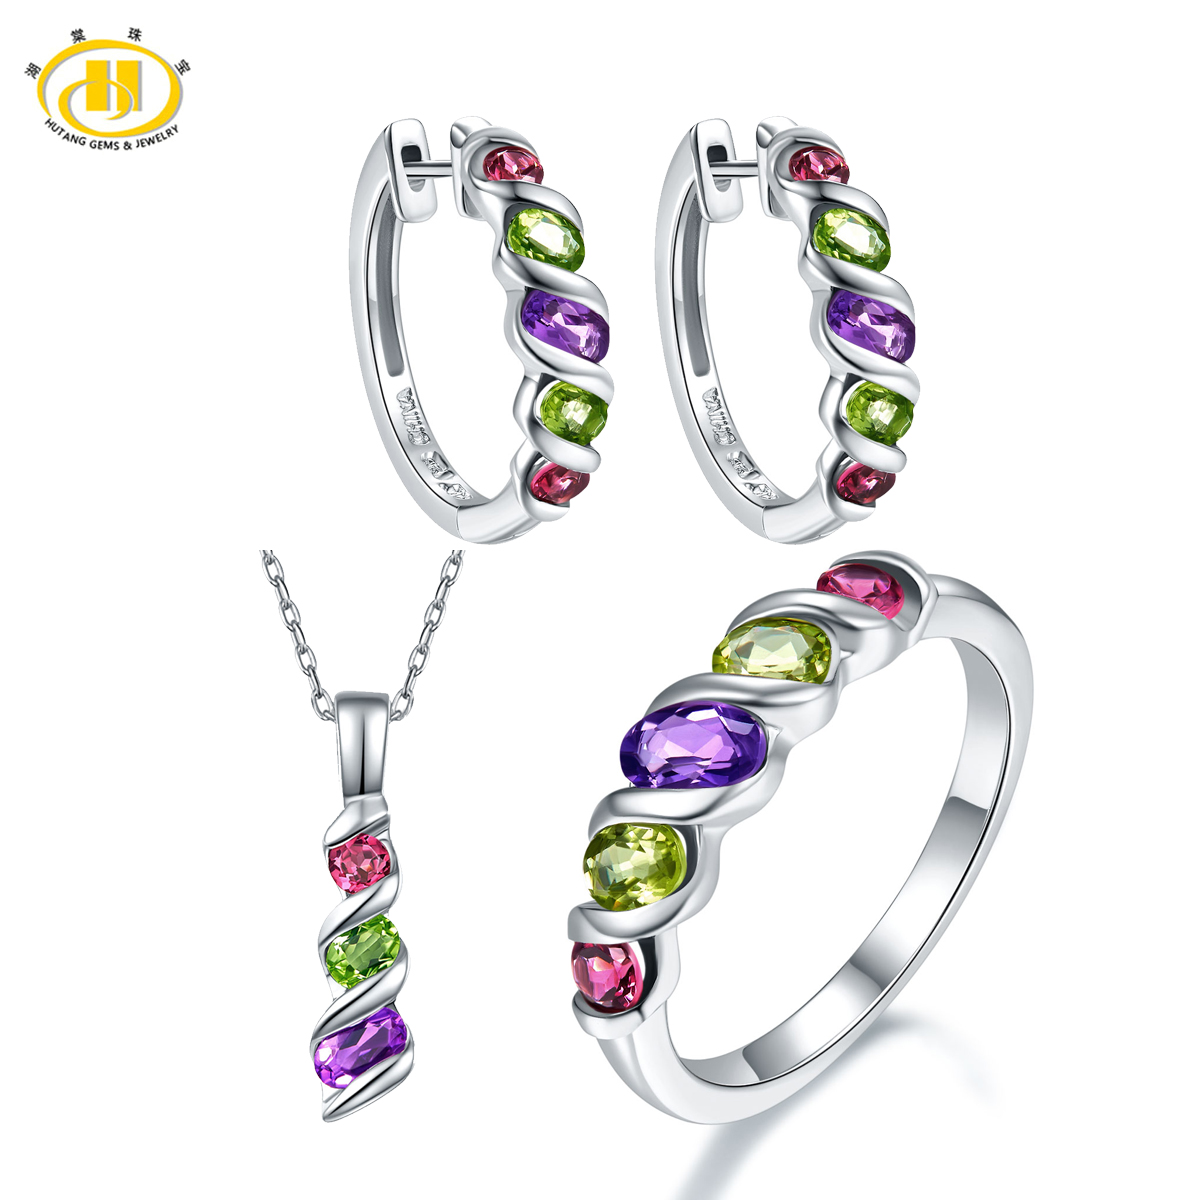 Hutang Colorful Gemstone Jewelry Sets for Women Solid 925 Sterling Silver Jewellry Ring Pendant Earrings 2017 New Design